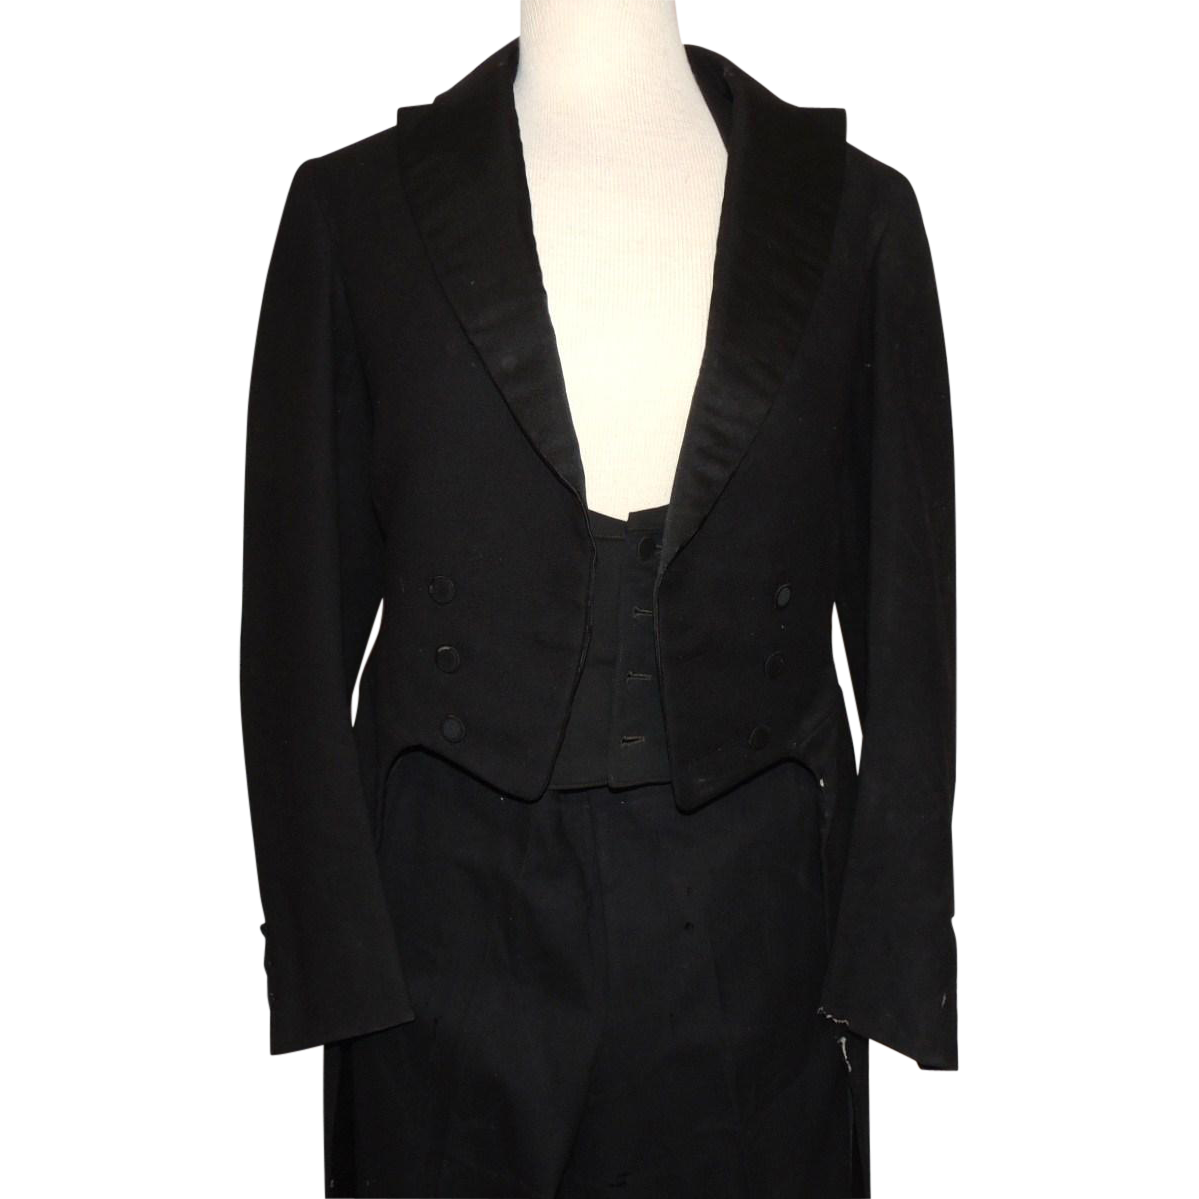 Victorian Edwardian Long Tail Wool & Silk Tuxedo Hart Schaffner Marx